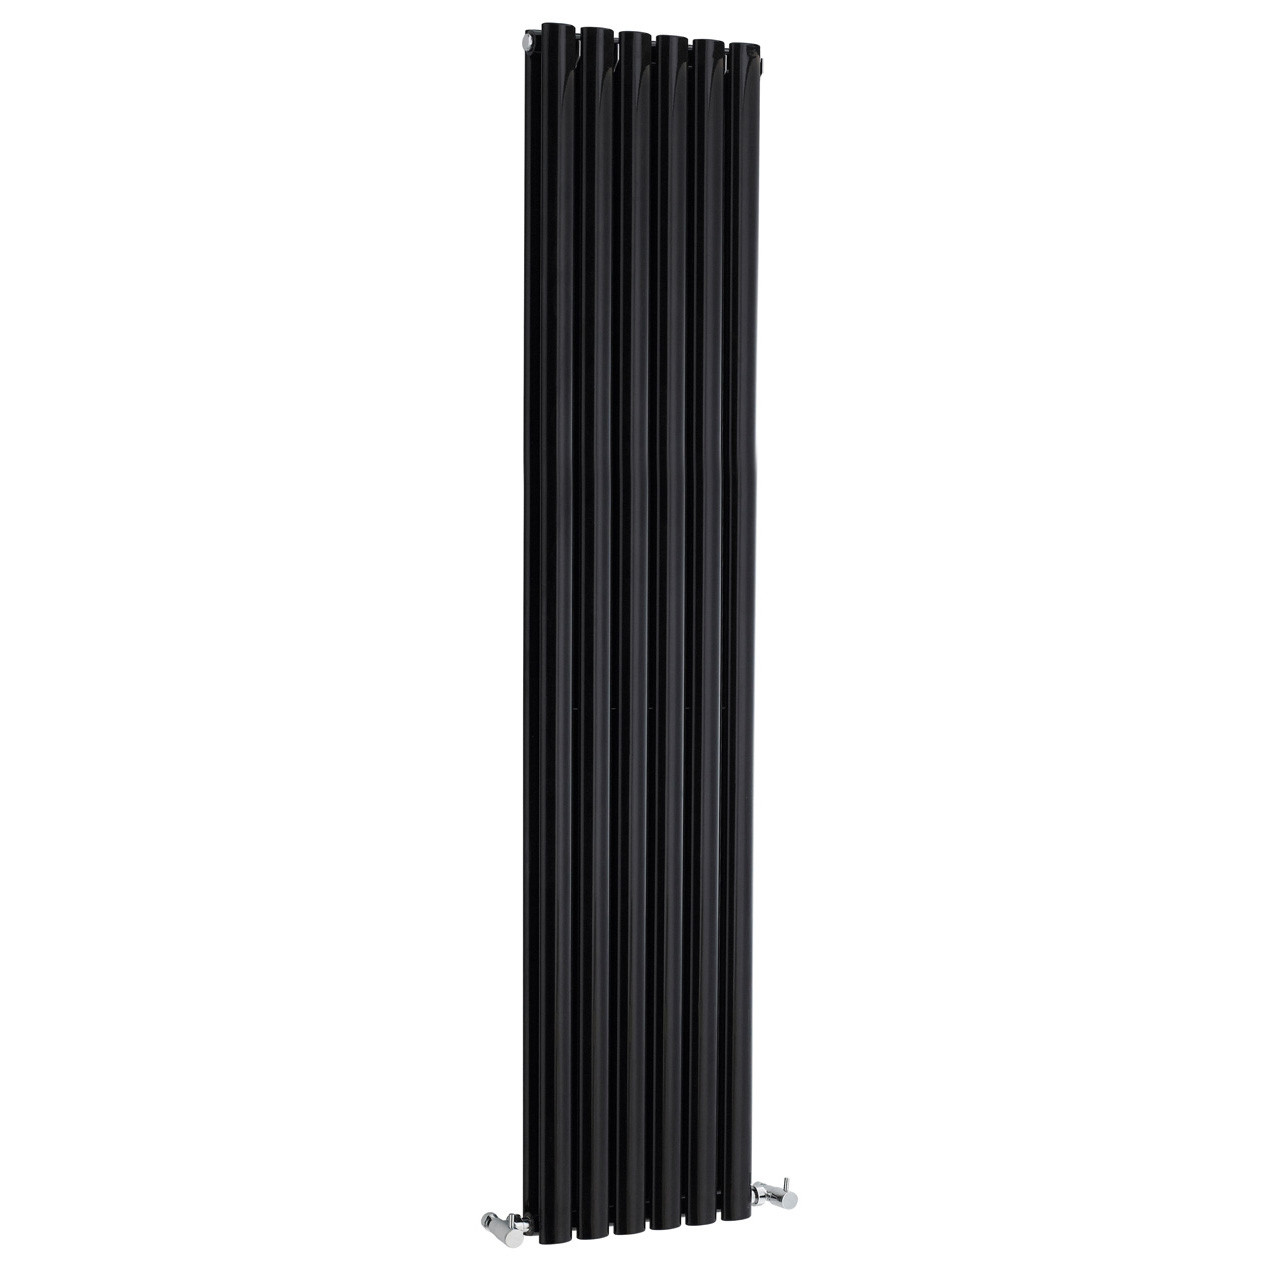 Hudson Reed Revive Double Panel Radiator 1800mm x 354mm - HLB77